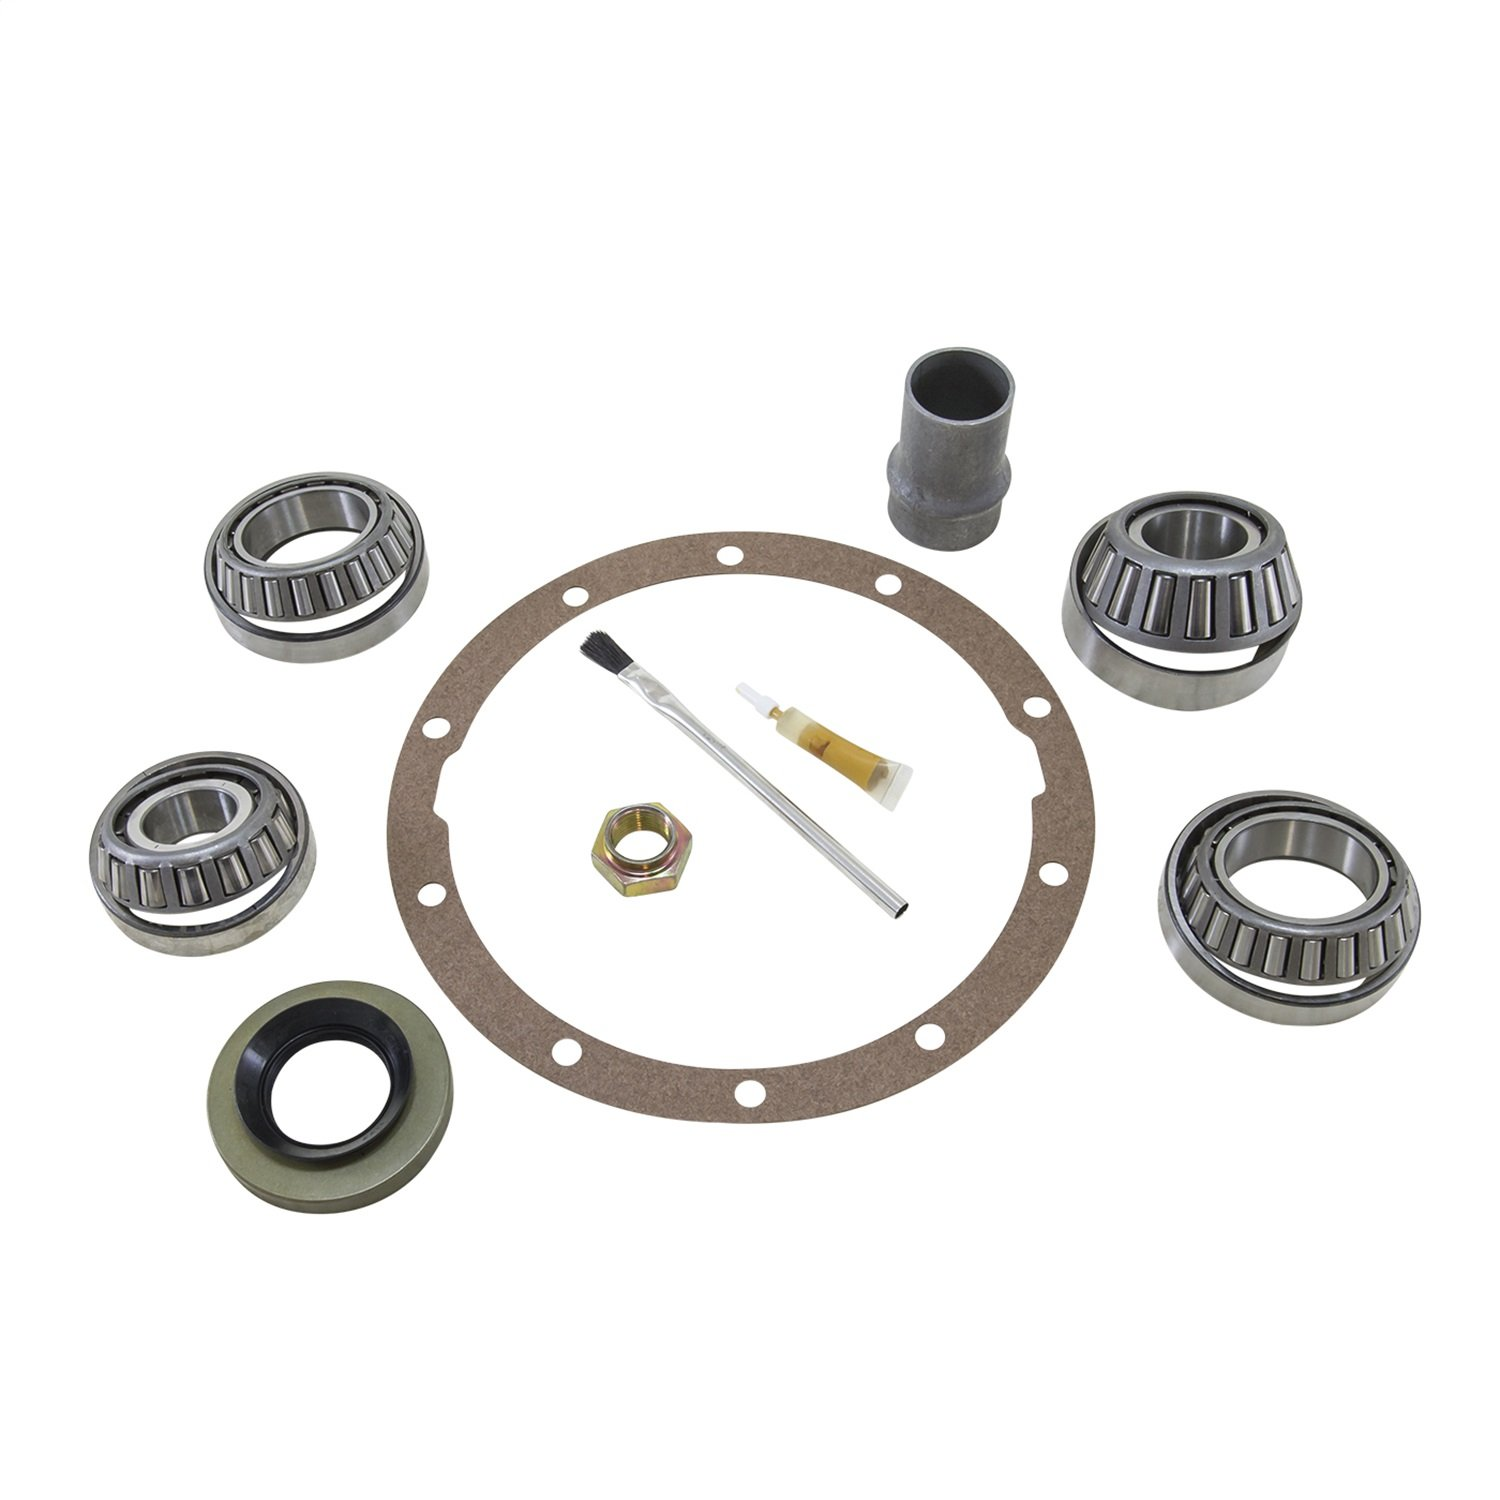 Yukon (BK T8-D) Bearing Installation Kit for Toyota 8'' Differential with OEM Ring and Pinion